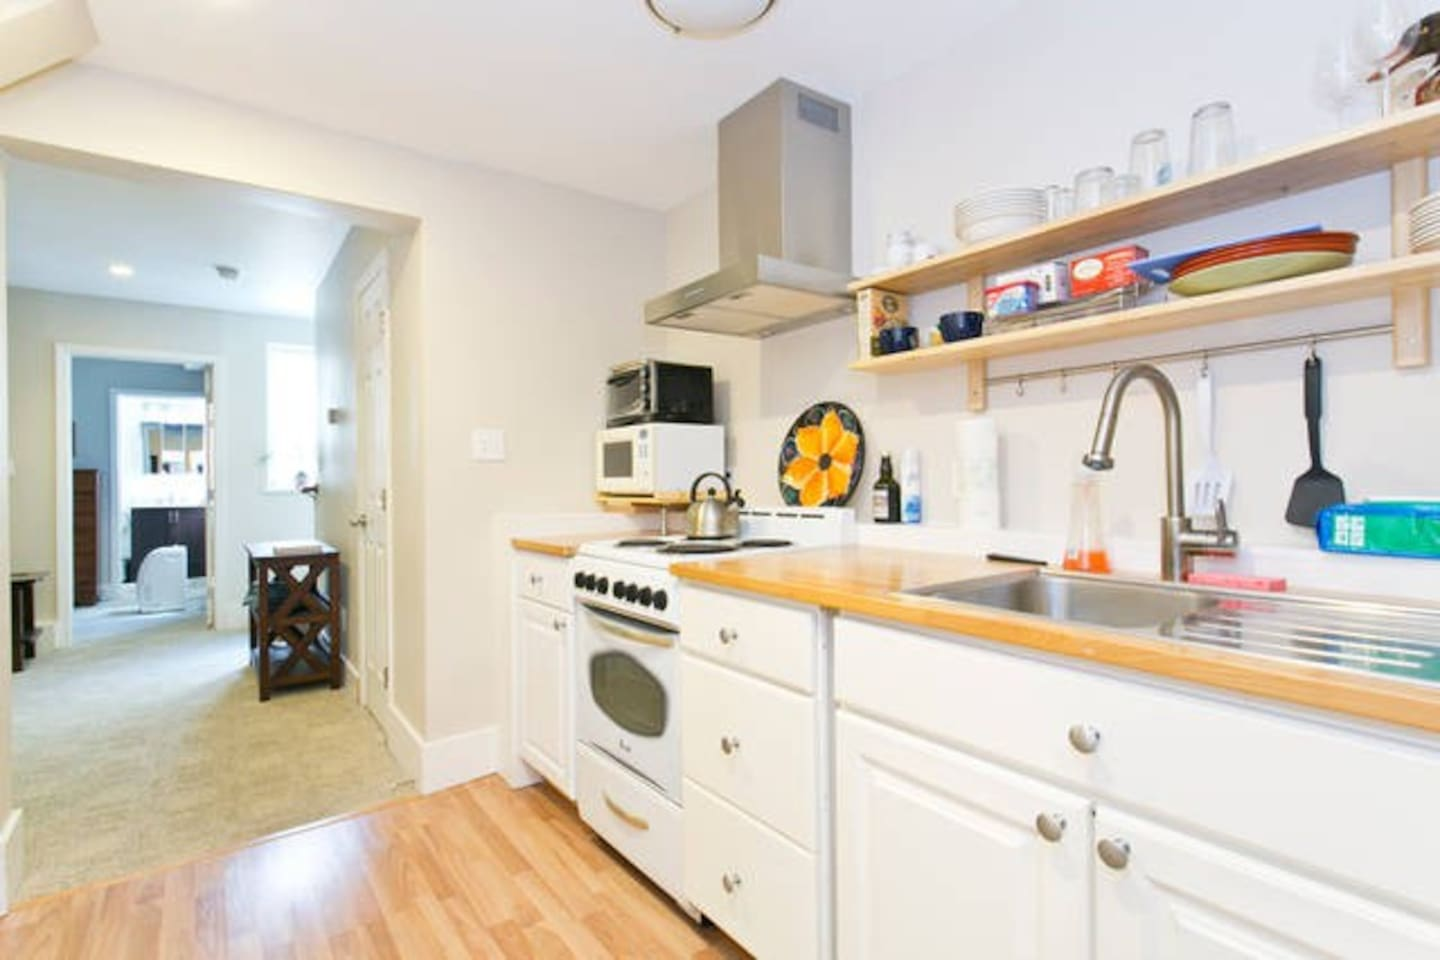 This quaint full kitchen with hardwood floors is sure to accommodate!